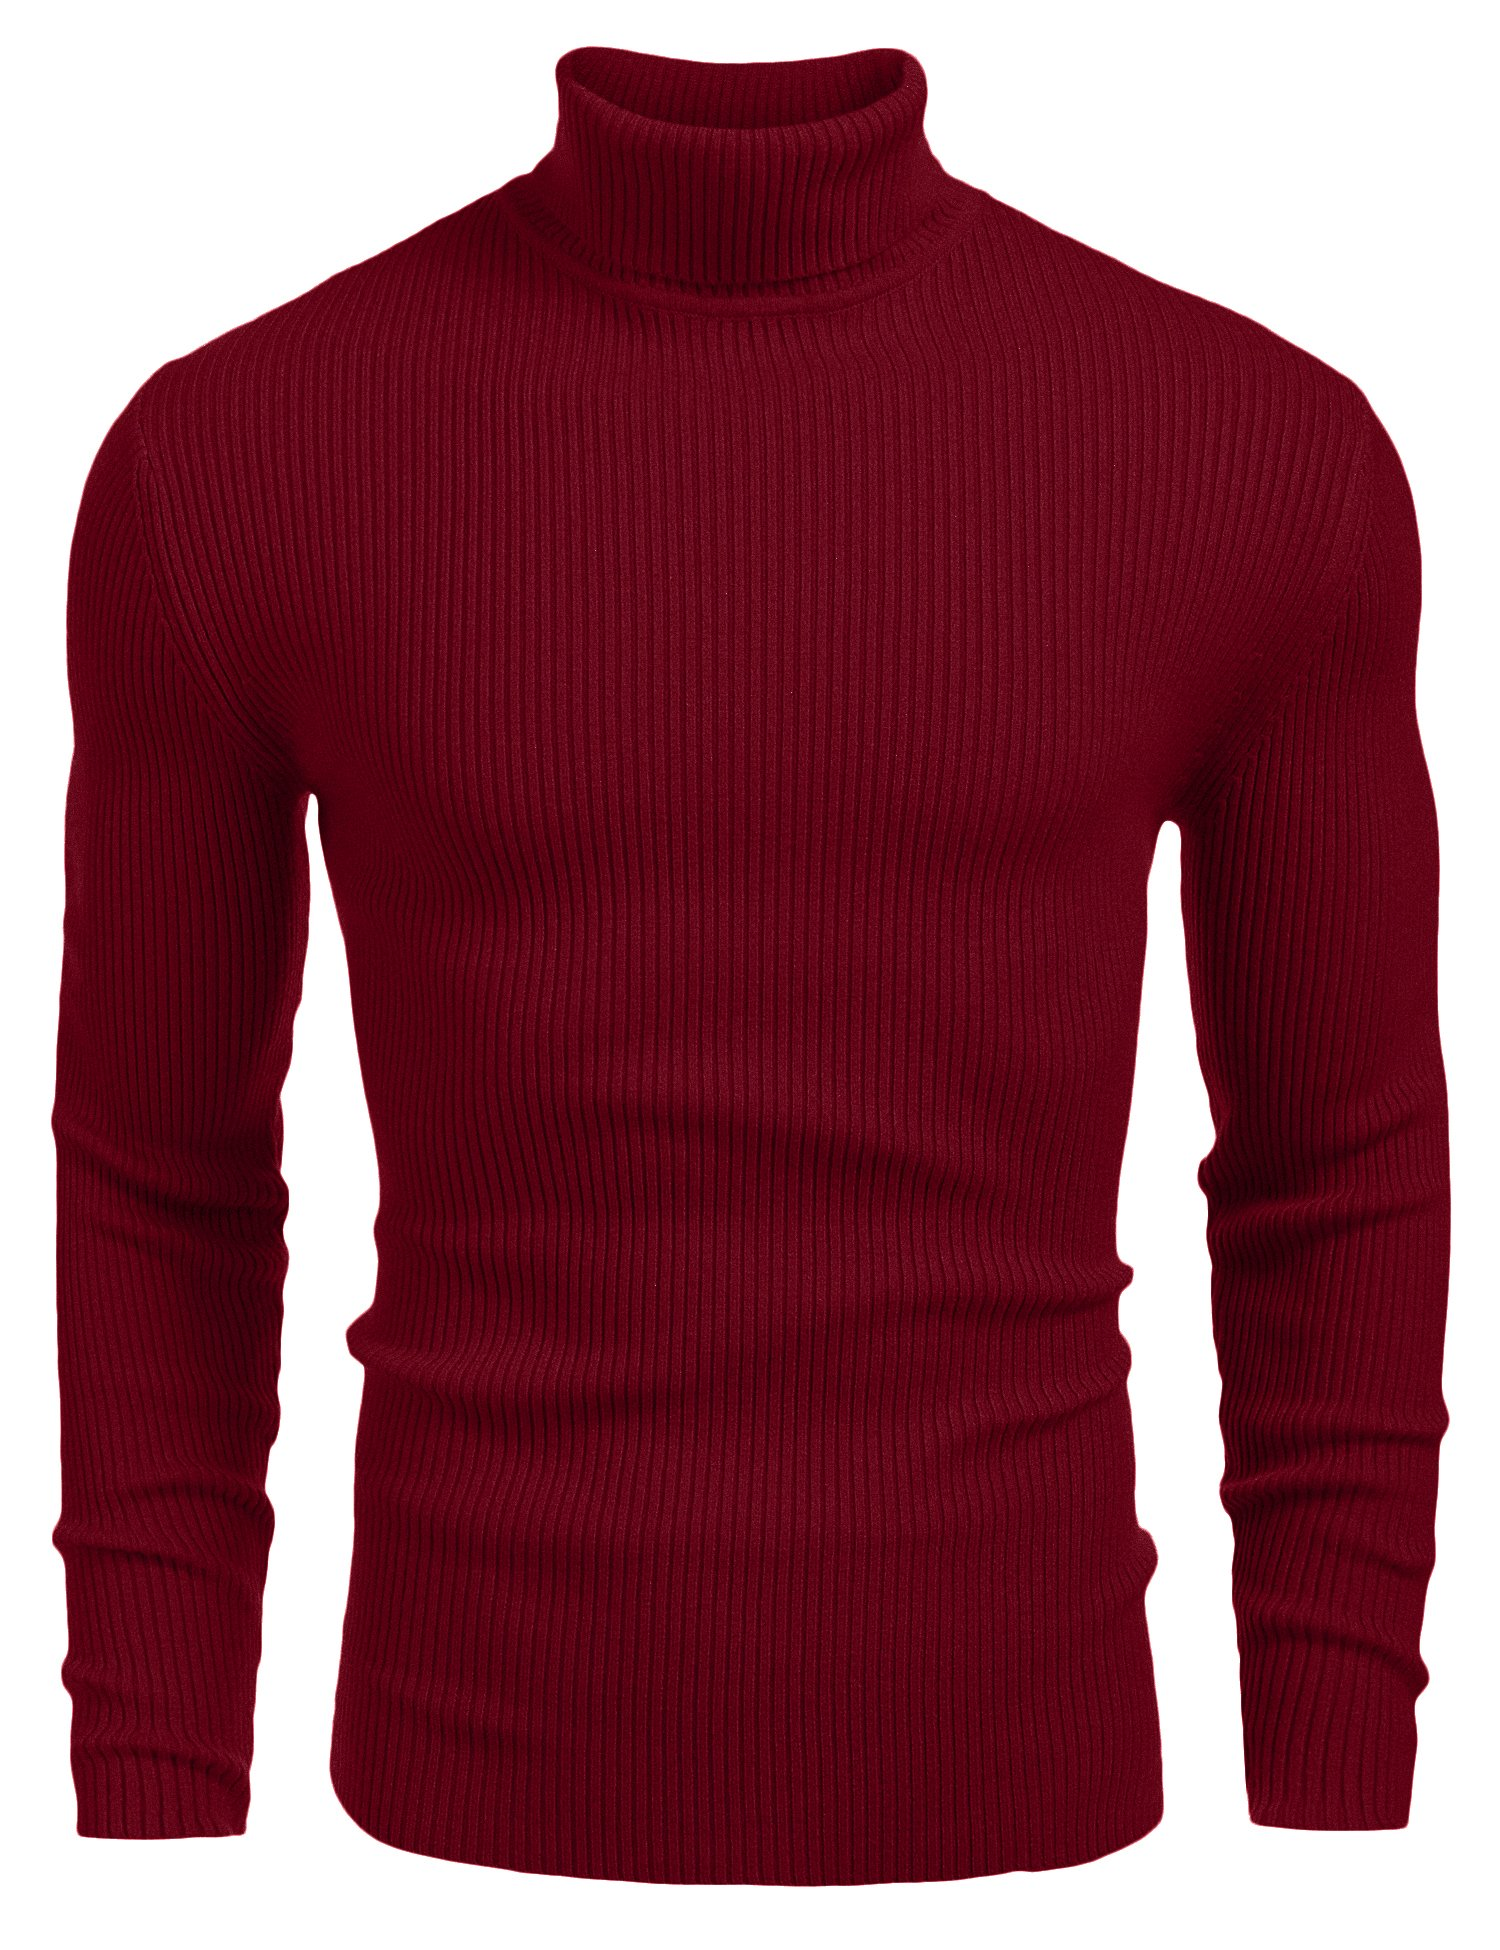 Coofandy Mens Ribbed Slim Fit Knitted Pullover Turtleneck Sweater, Wine Red ,X-Large